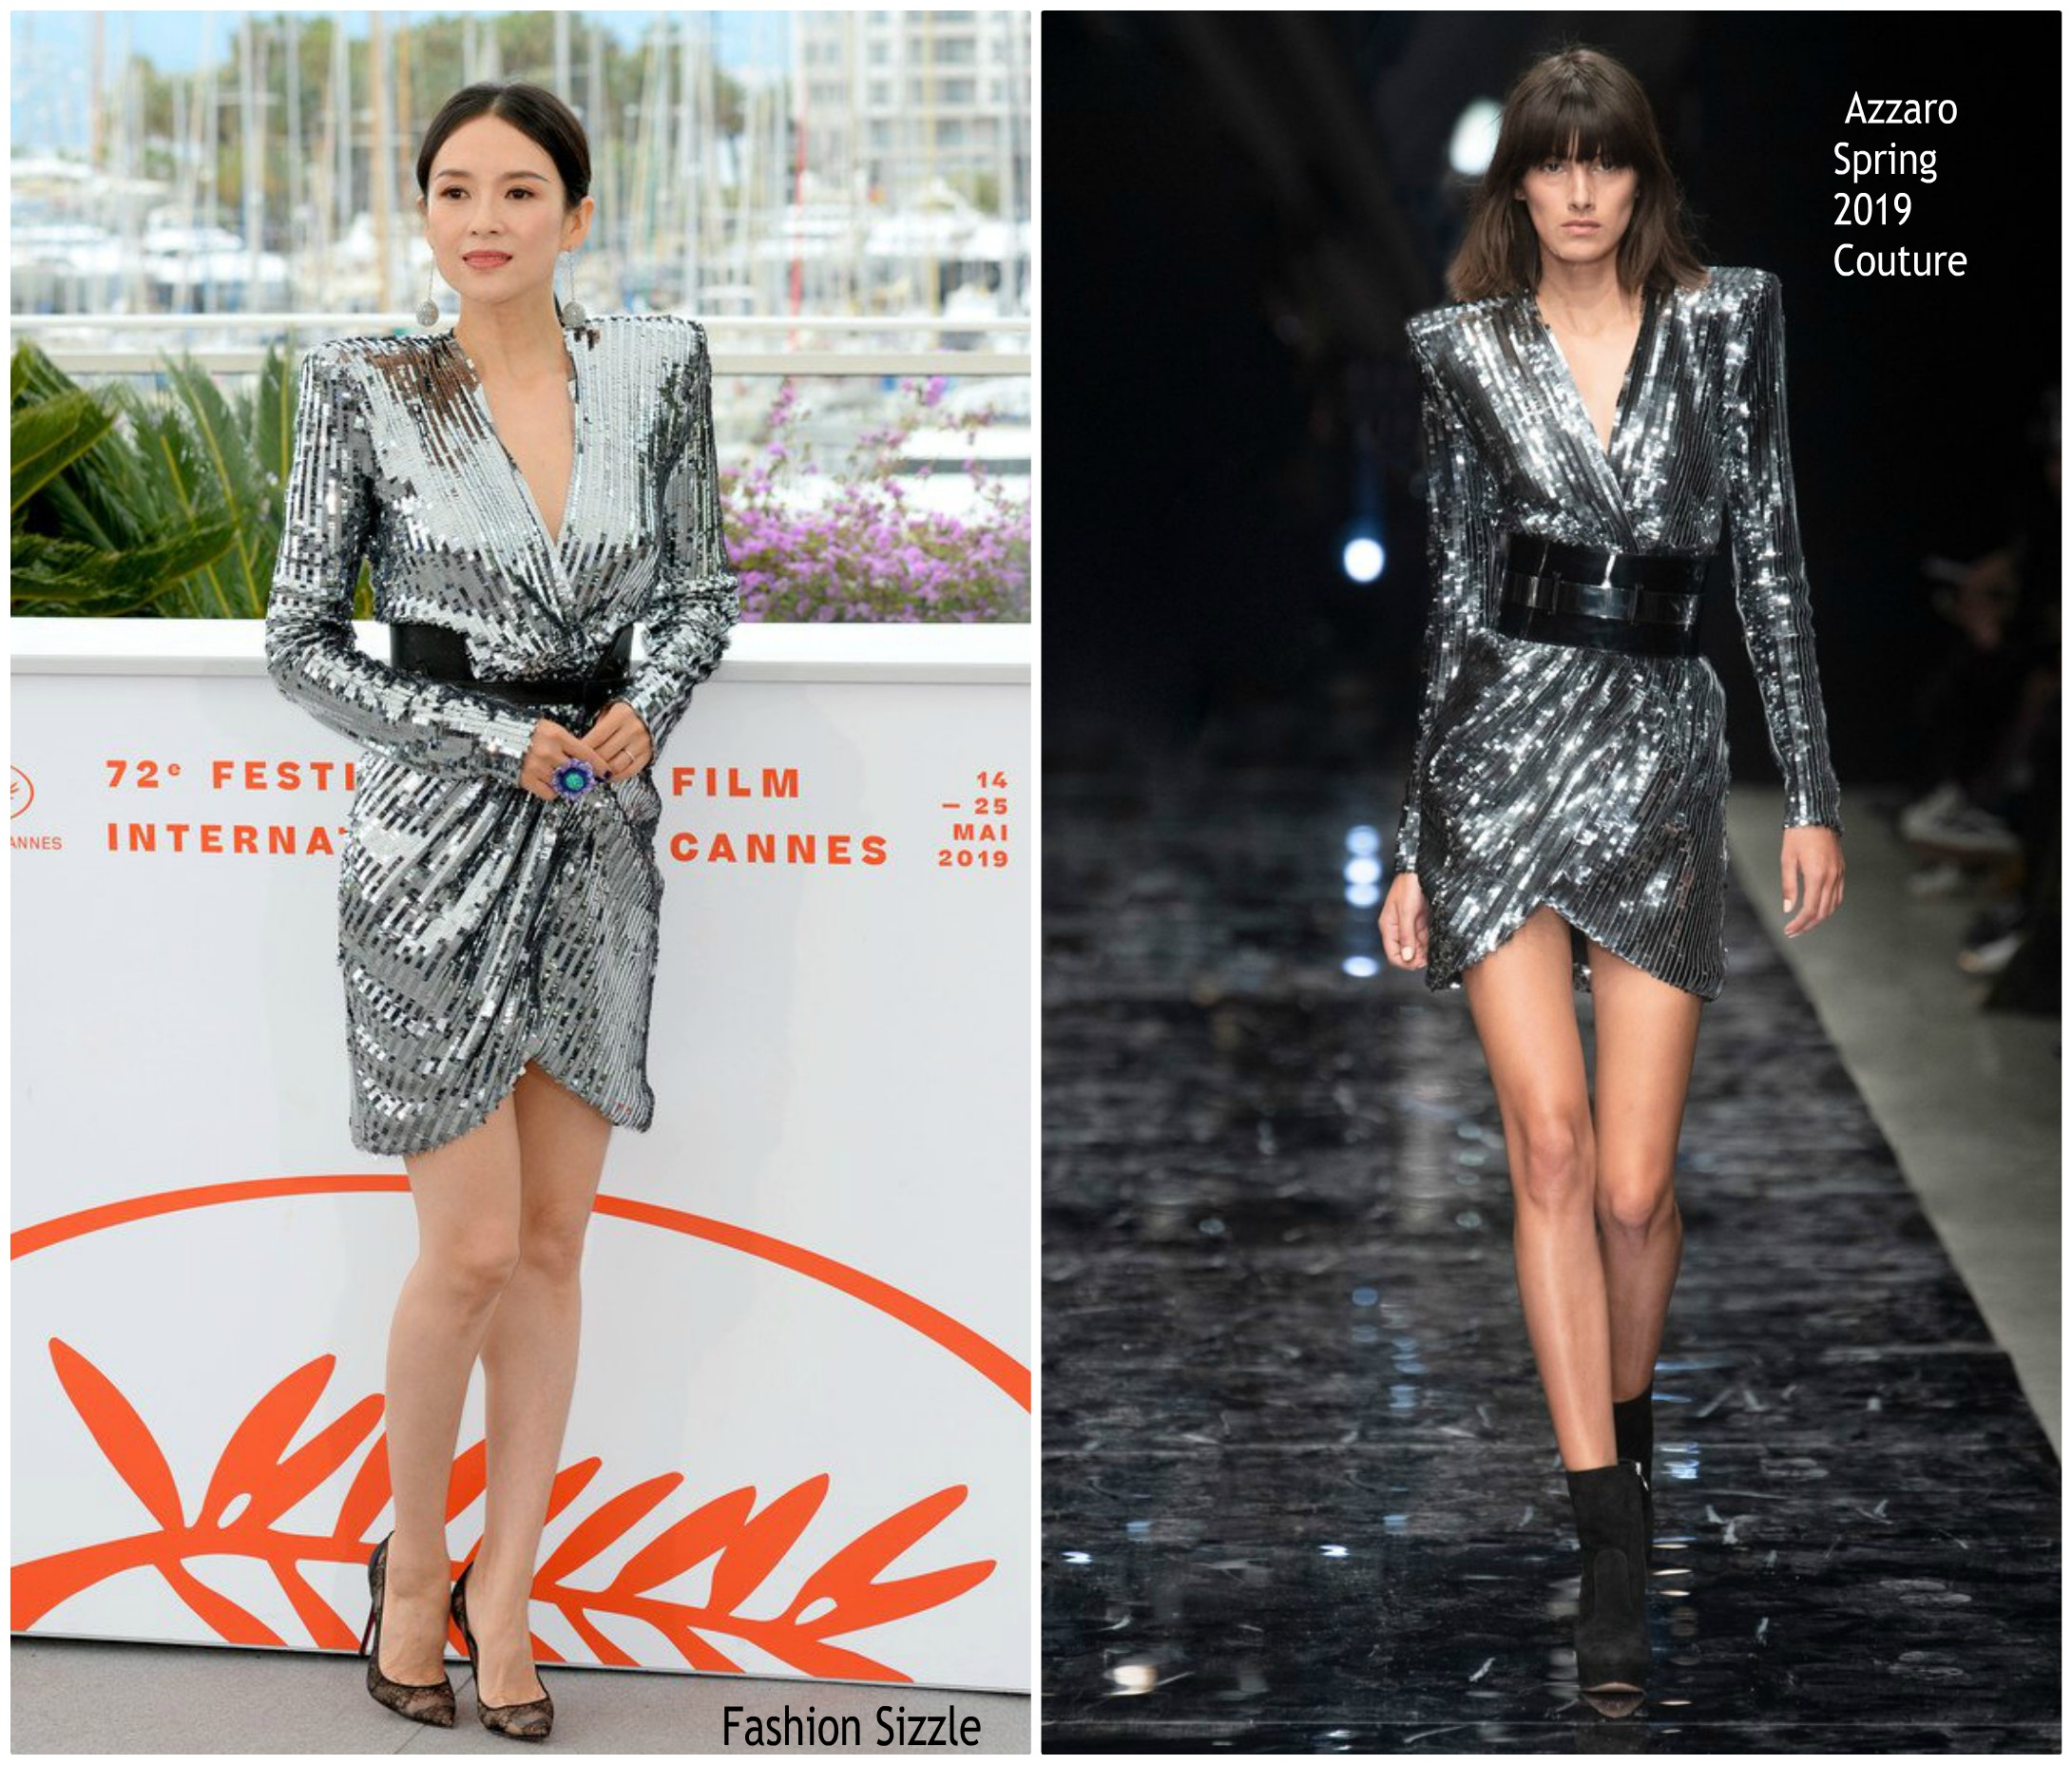 zhang-ziyi-in-azzaro-couture-rendez-vous-with-zhang-ziyi-cannes-film-festival-photocall